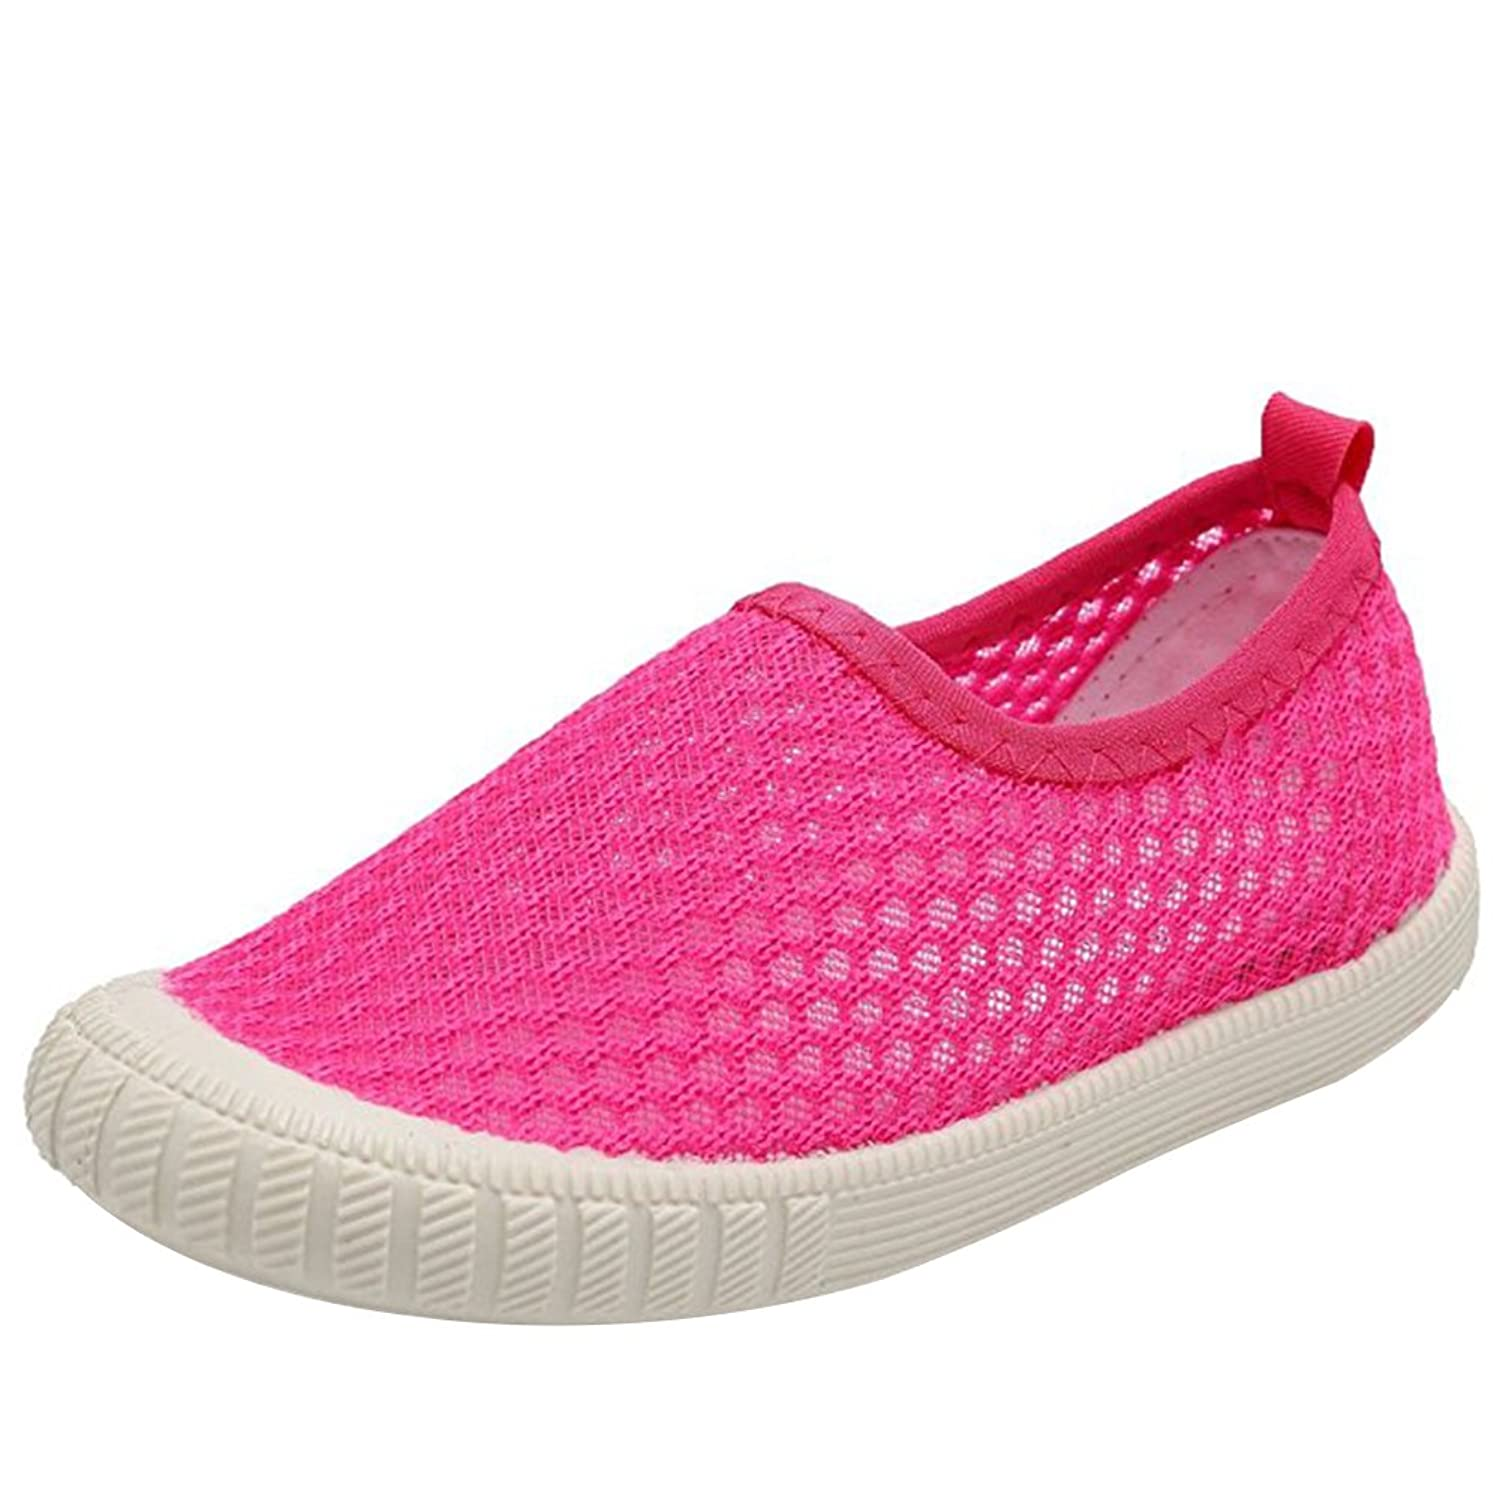 CIOR Kids Light Weight Sneakers Aquashoes Breathable Slip-on for Running Pool Beach Toddler/Little Kid